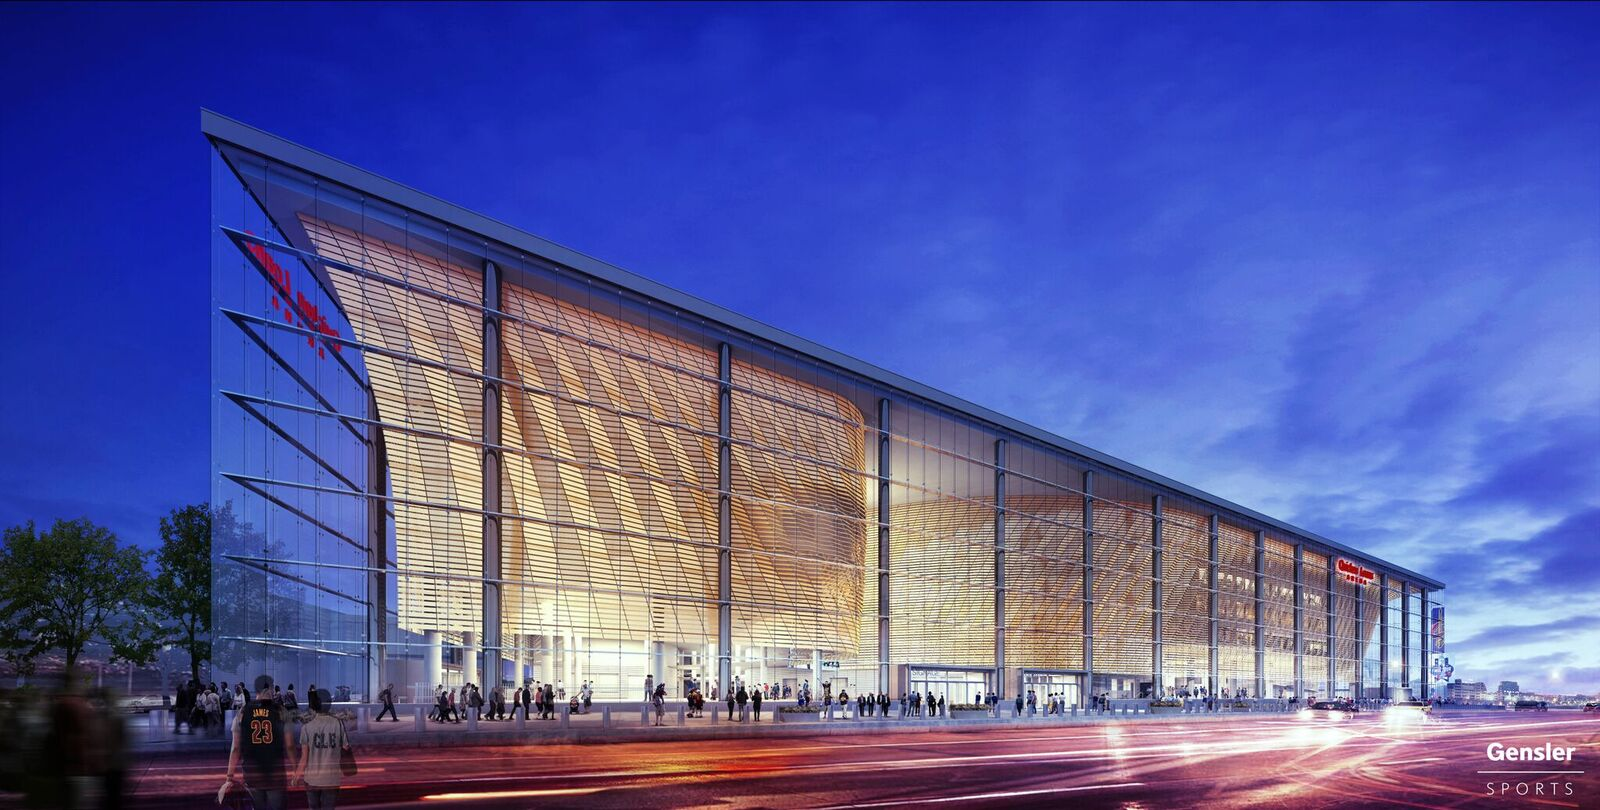 Shop Dropped For The Cavaliers 39 Basketball Arena In Favor Of Gensler